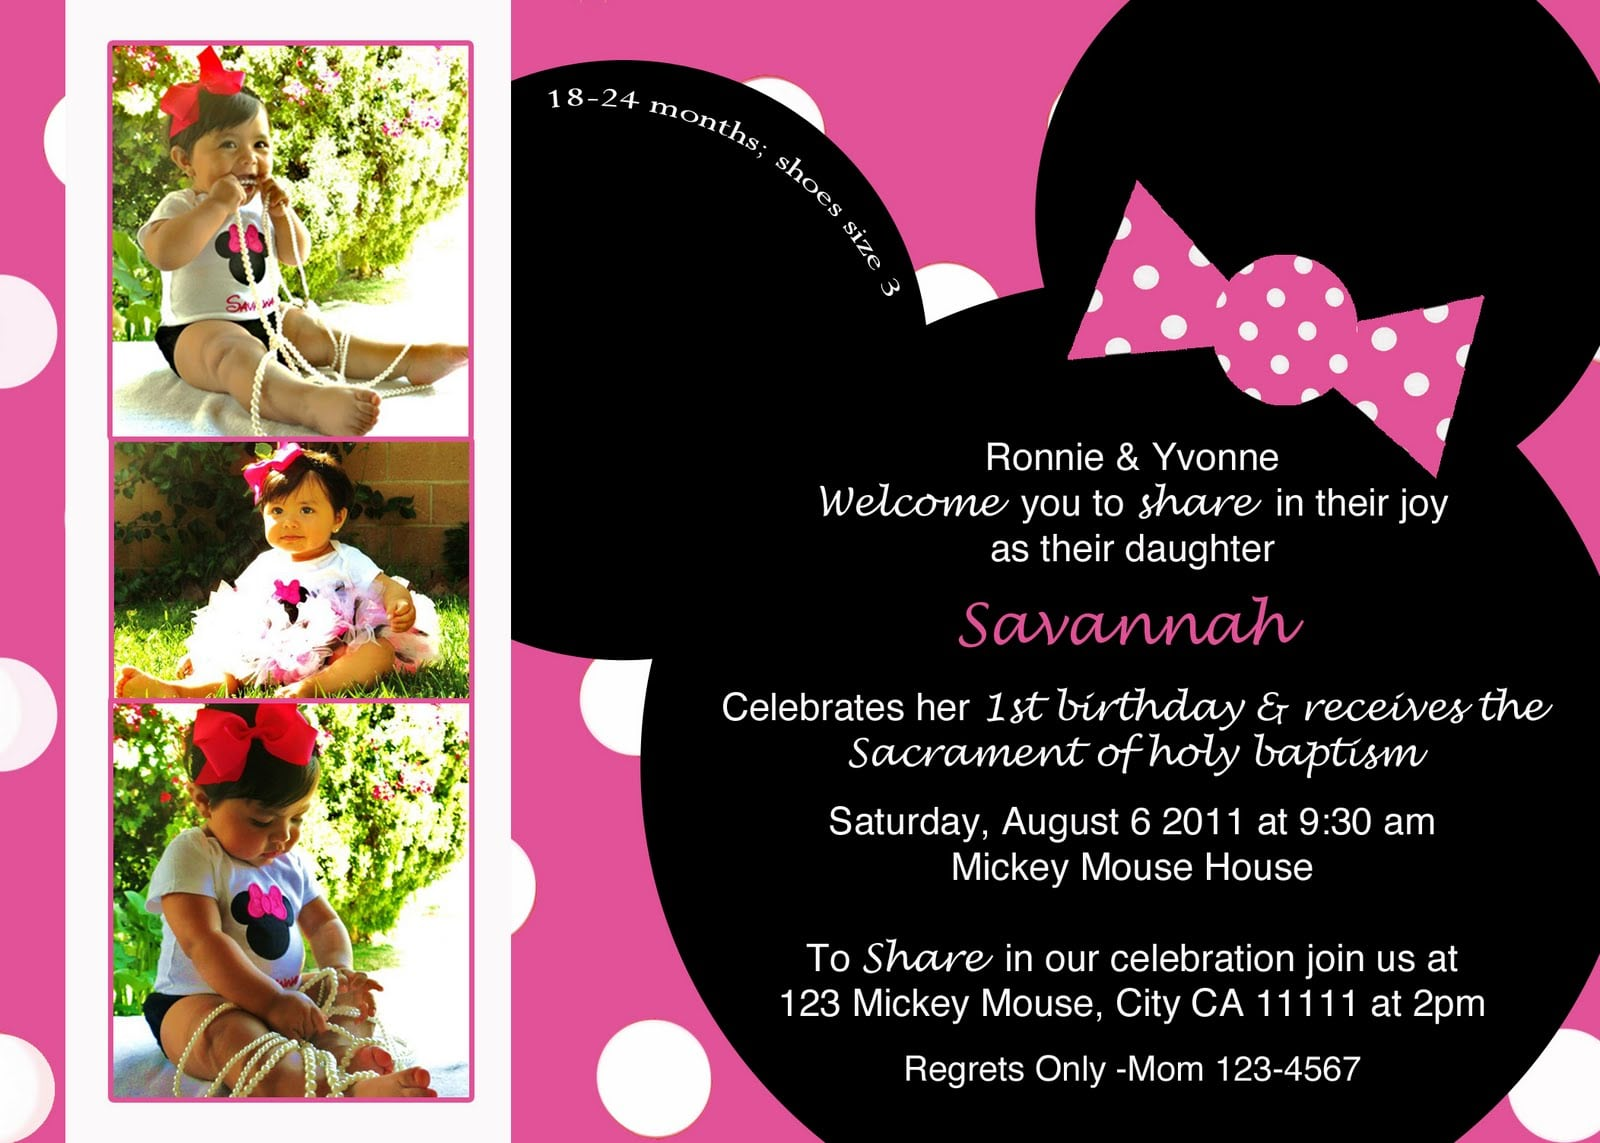 minnie_mouse_invitation_template_6 free printable minnie mouse birthday party invitations mickey,Free Online Minnie Mouse Invitations